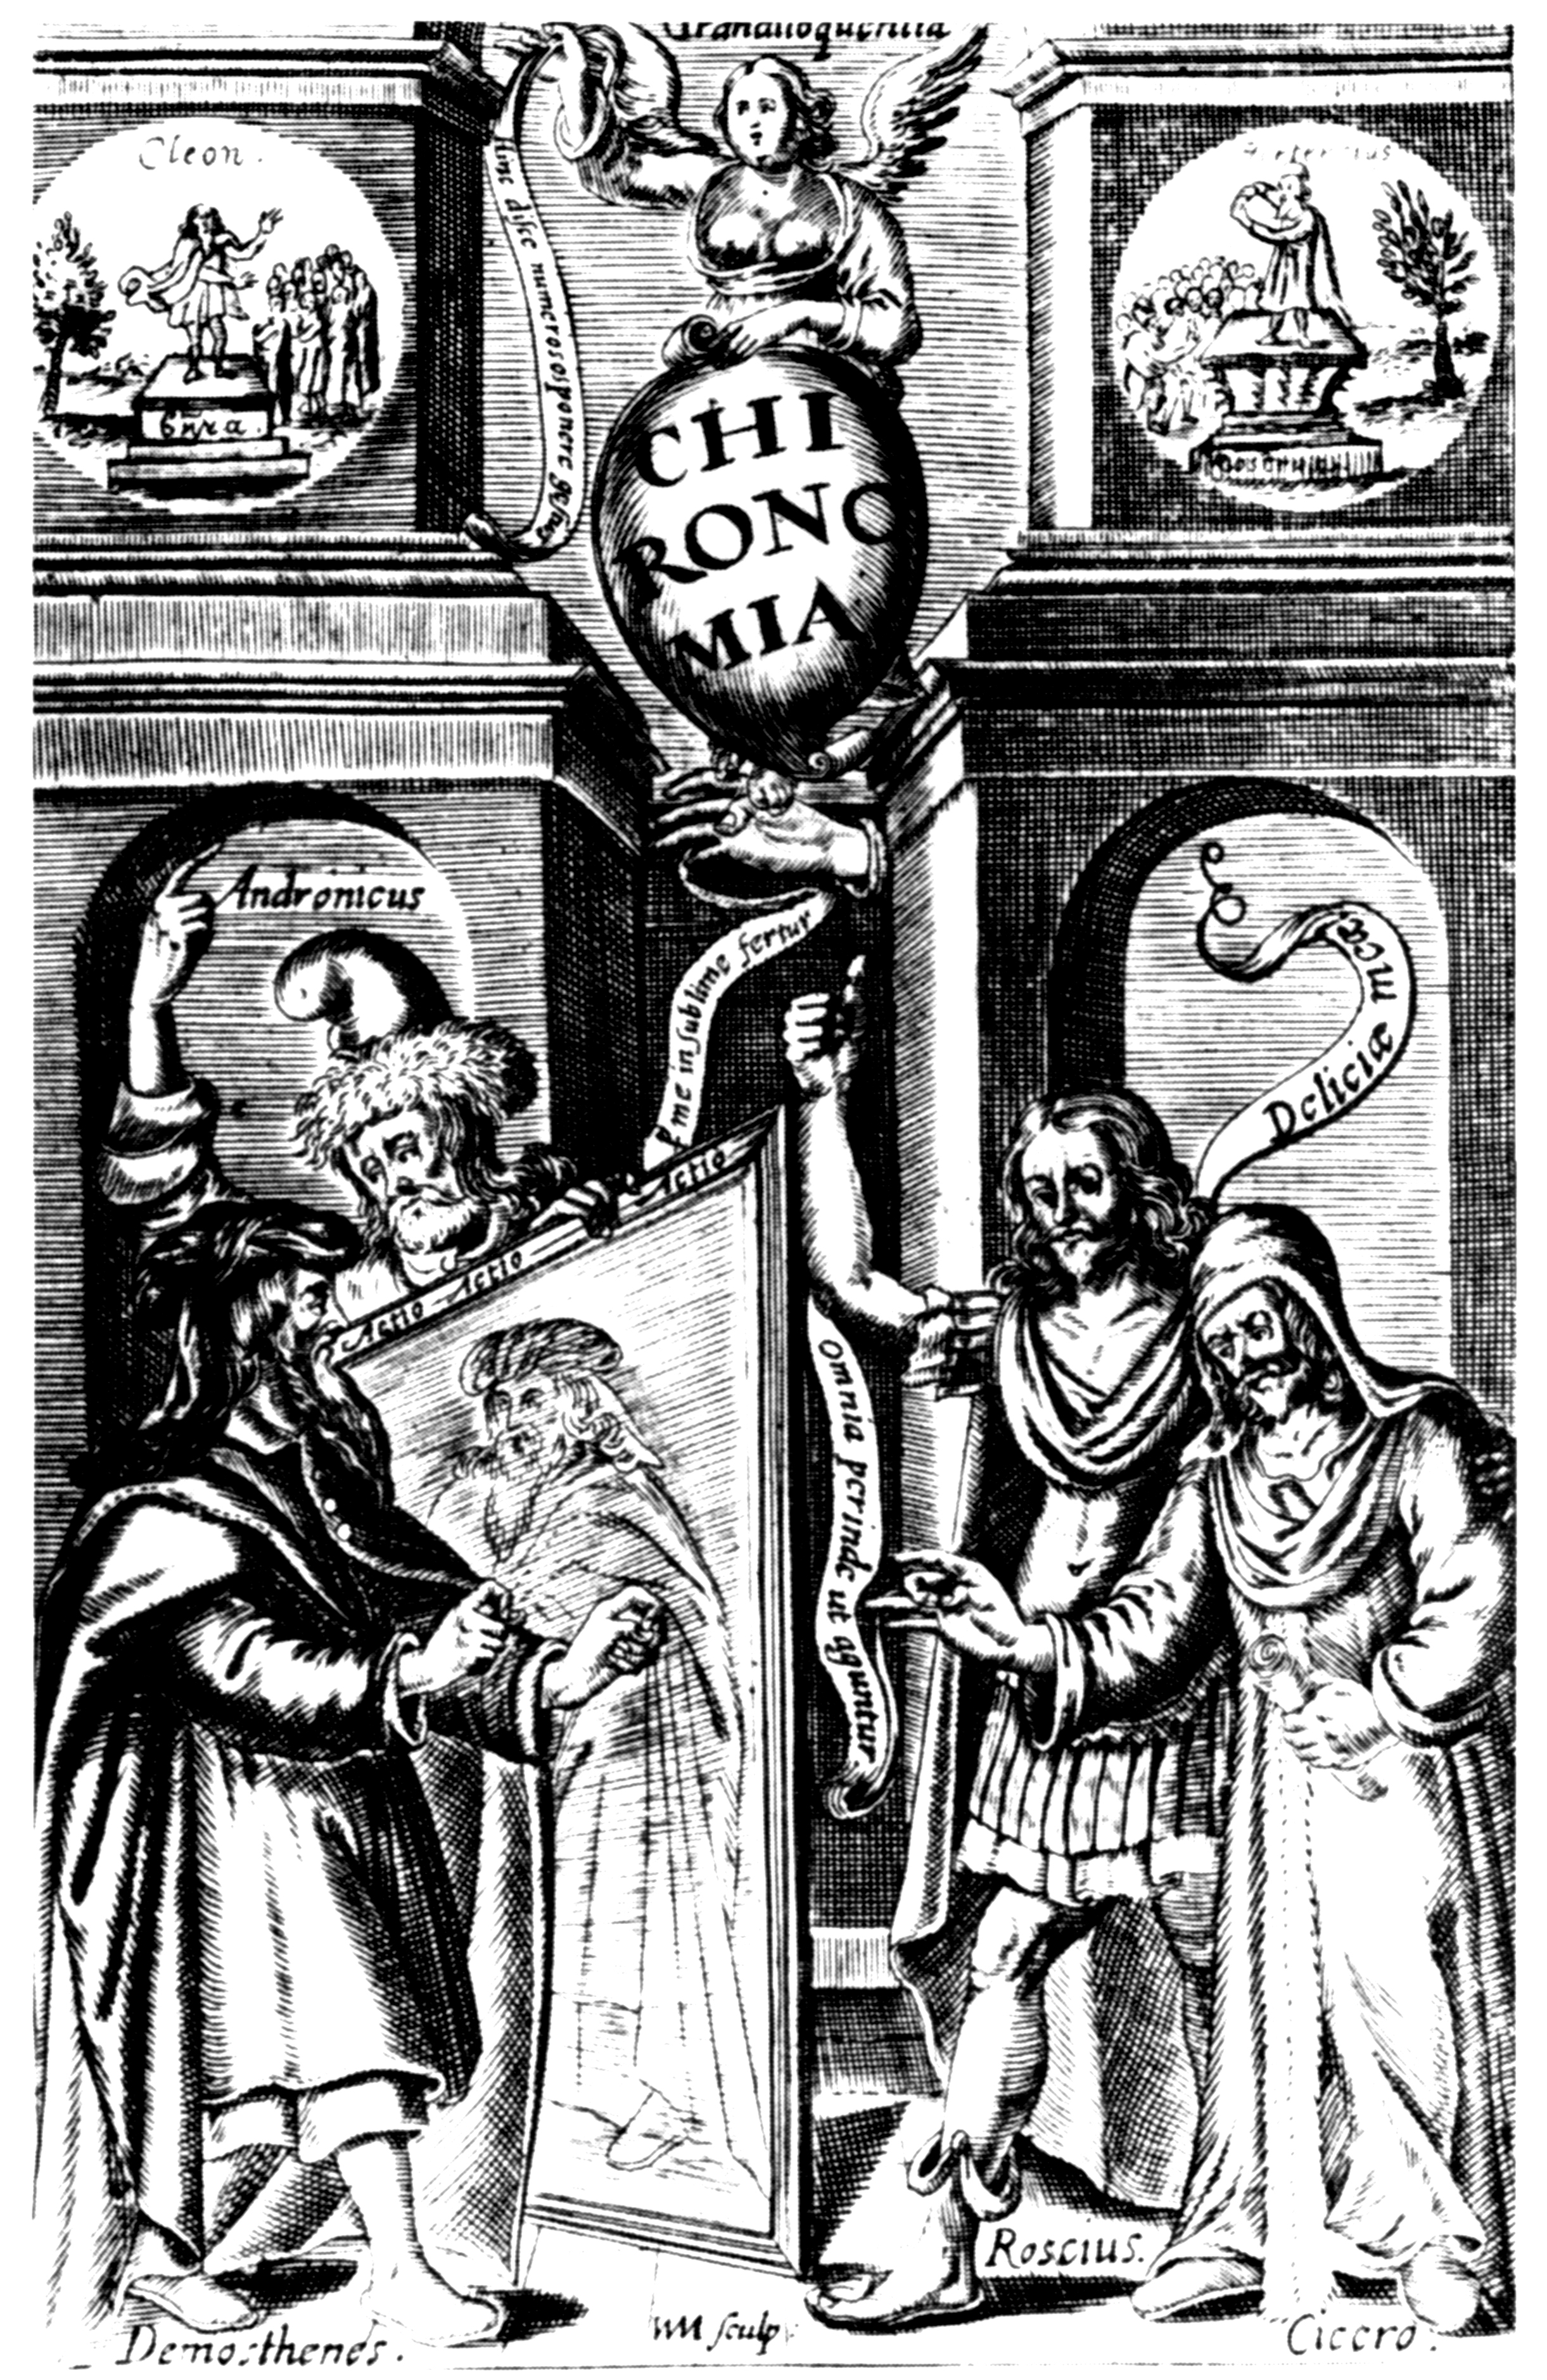 John_Bulwer_Chironomia_frontispiece_1644 (1)